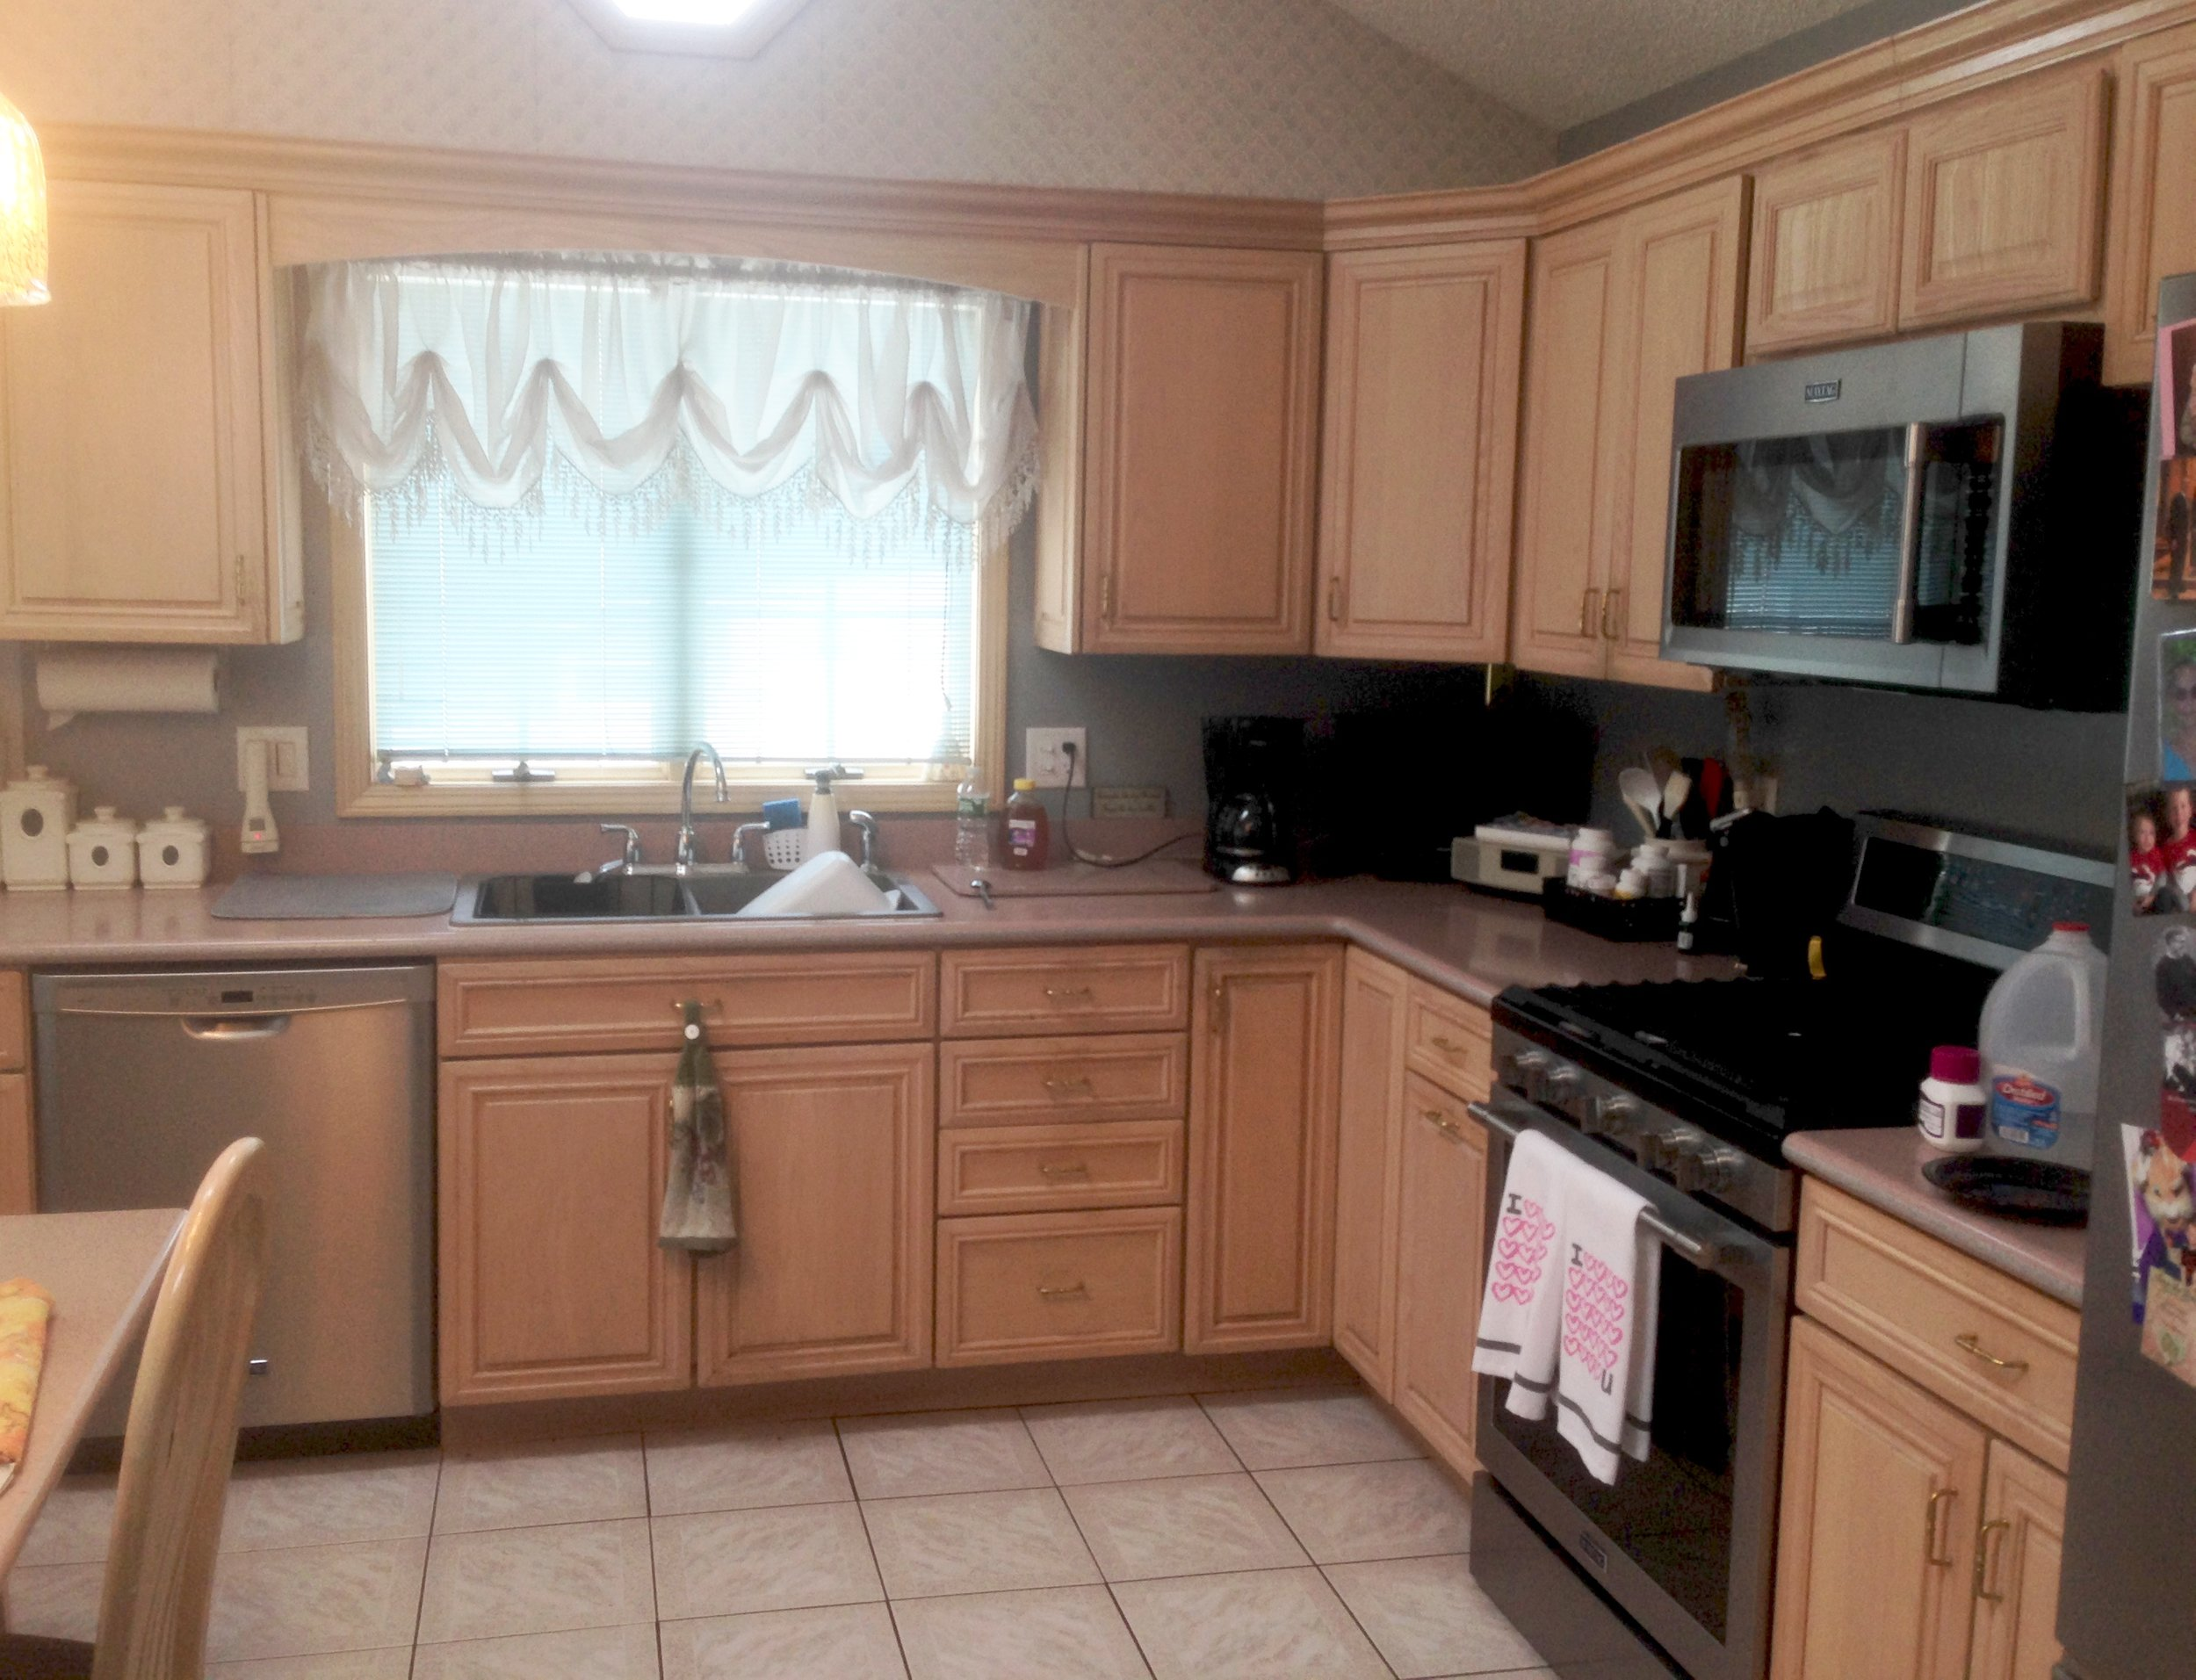 A new fresh look for this Albany kitchen preserving its good bones!